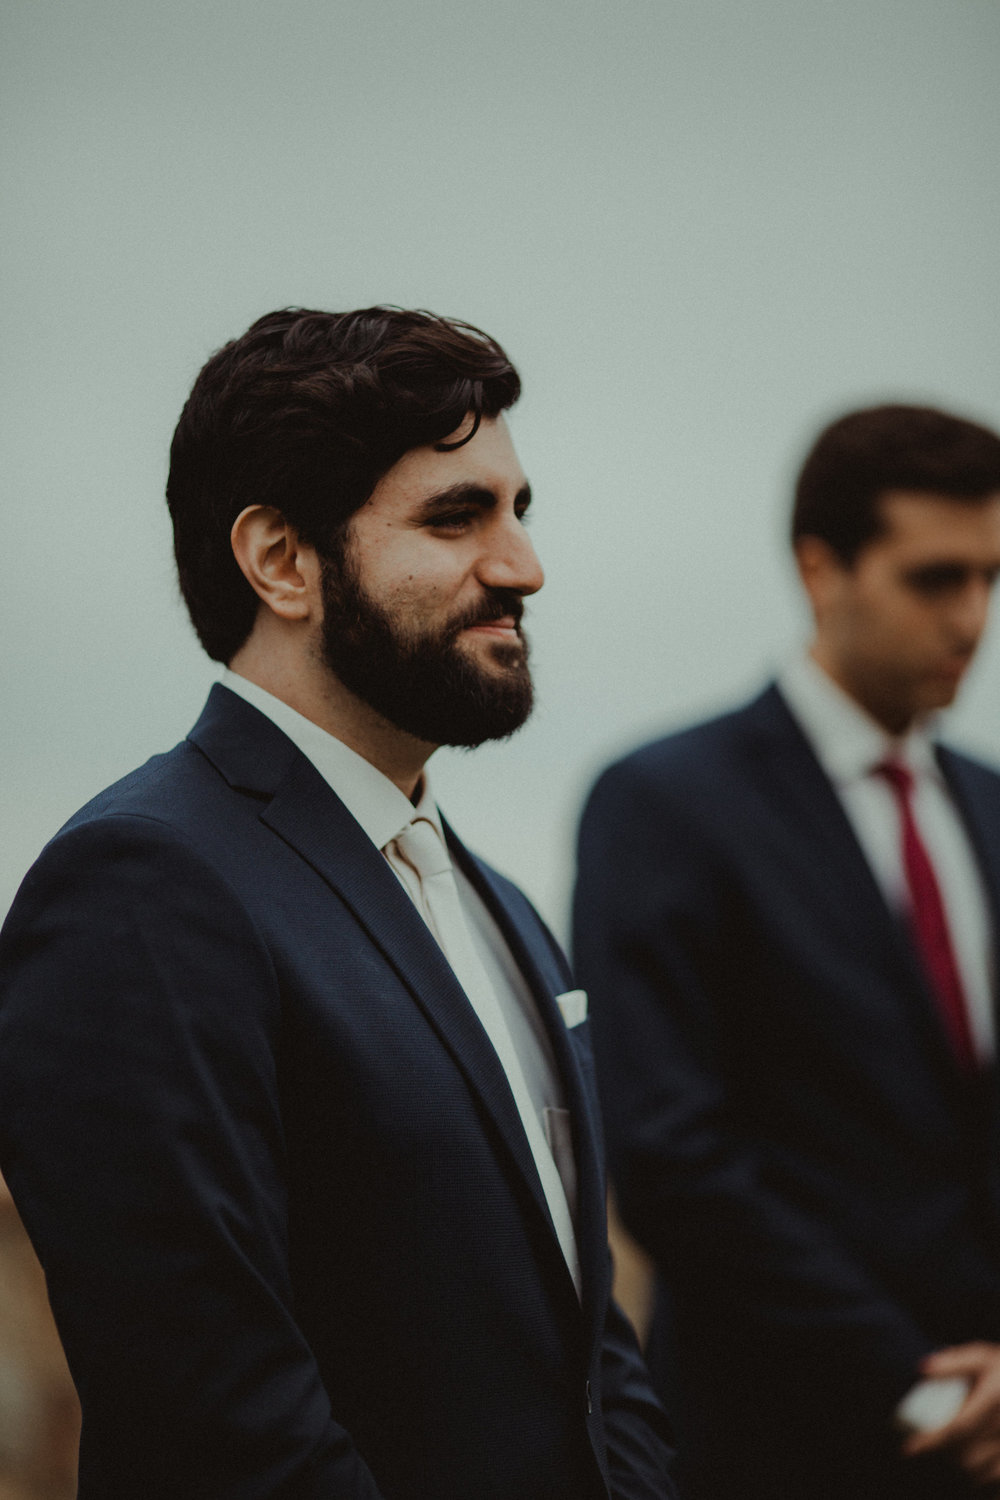 The sweet expression when the groom sees his bride down the aisle